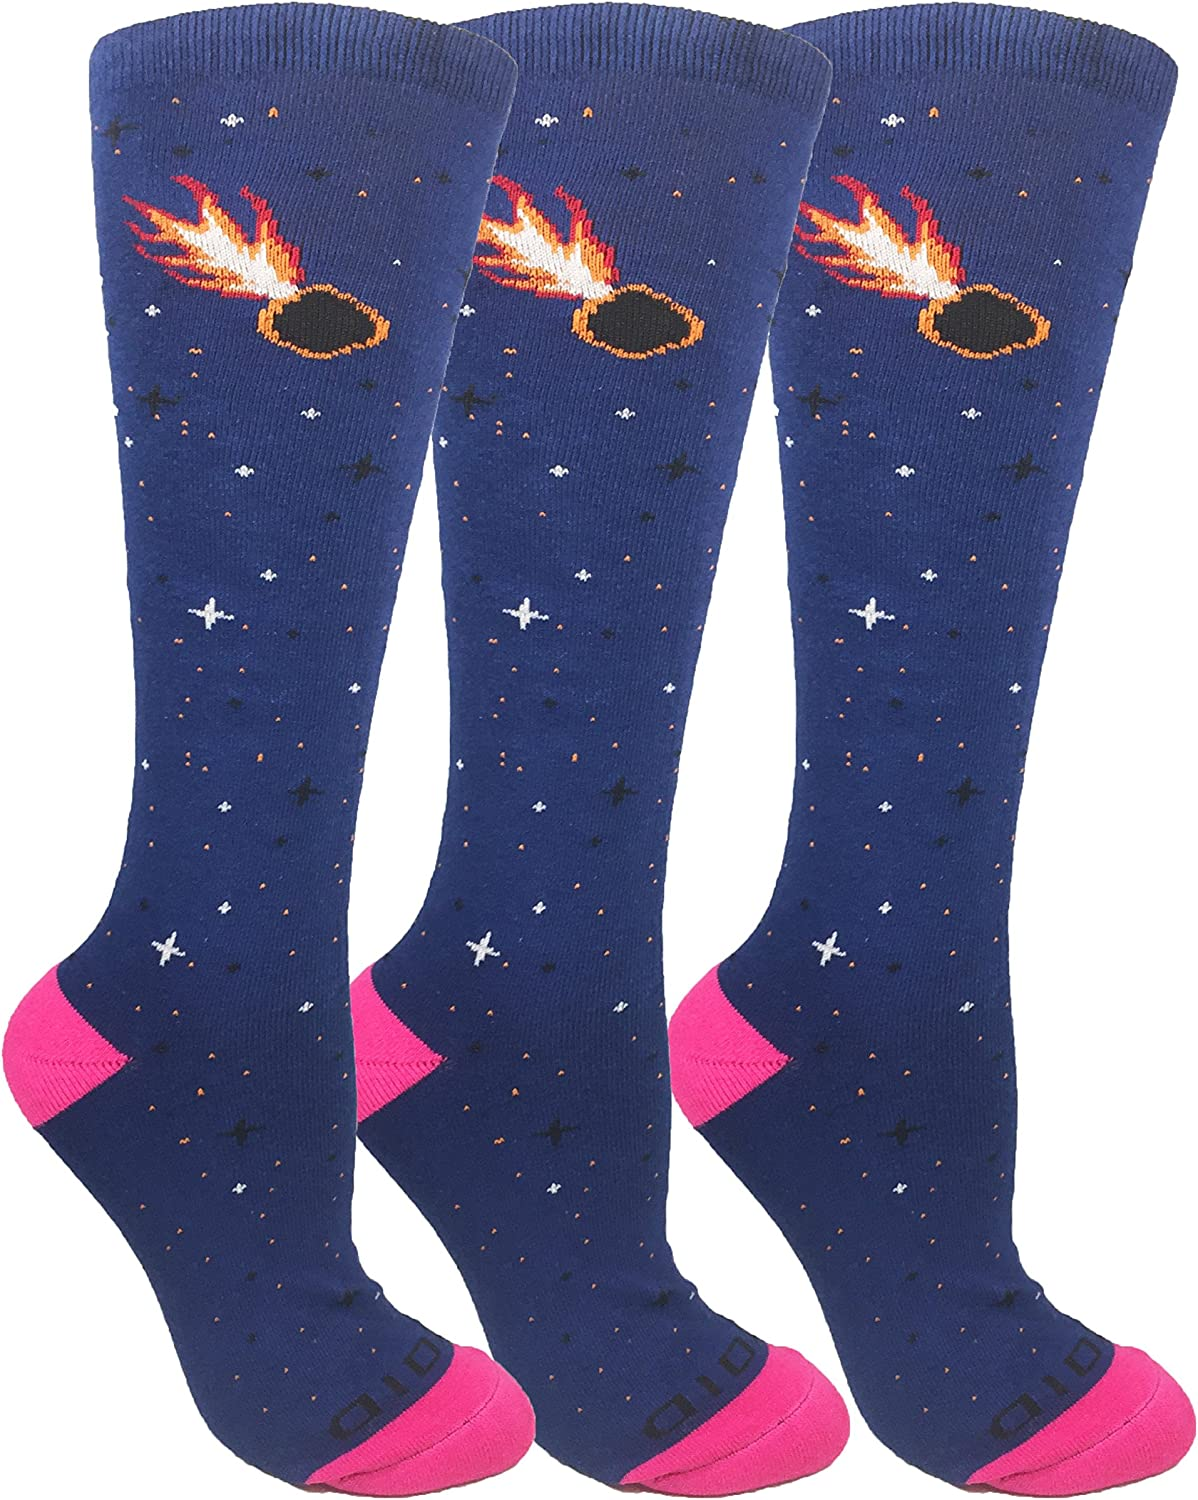 Moxy Socks 3Pack Women's Galaxy Line Navy Asteroid Performance KneeHigh Socks